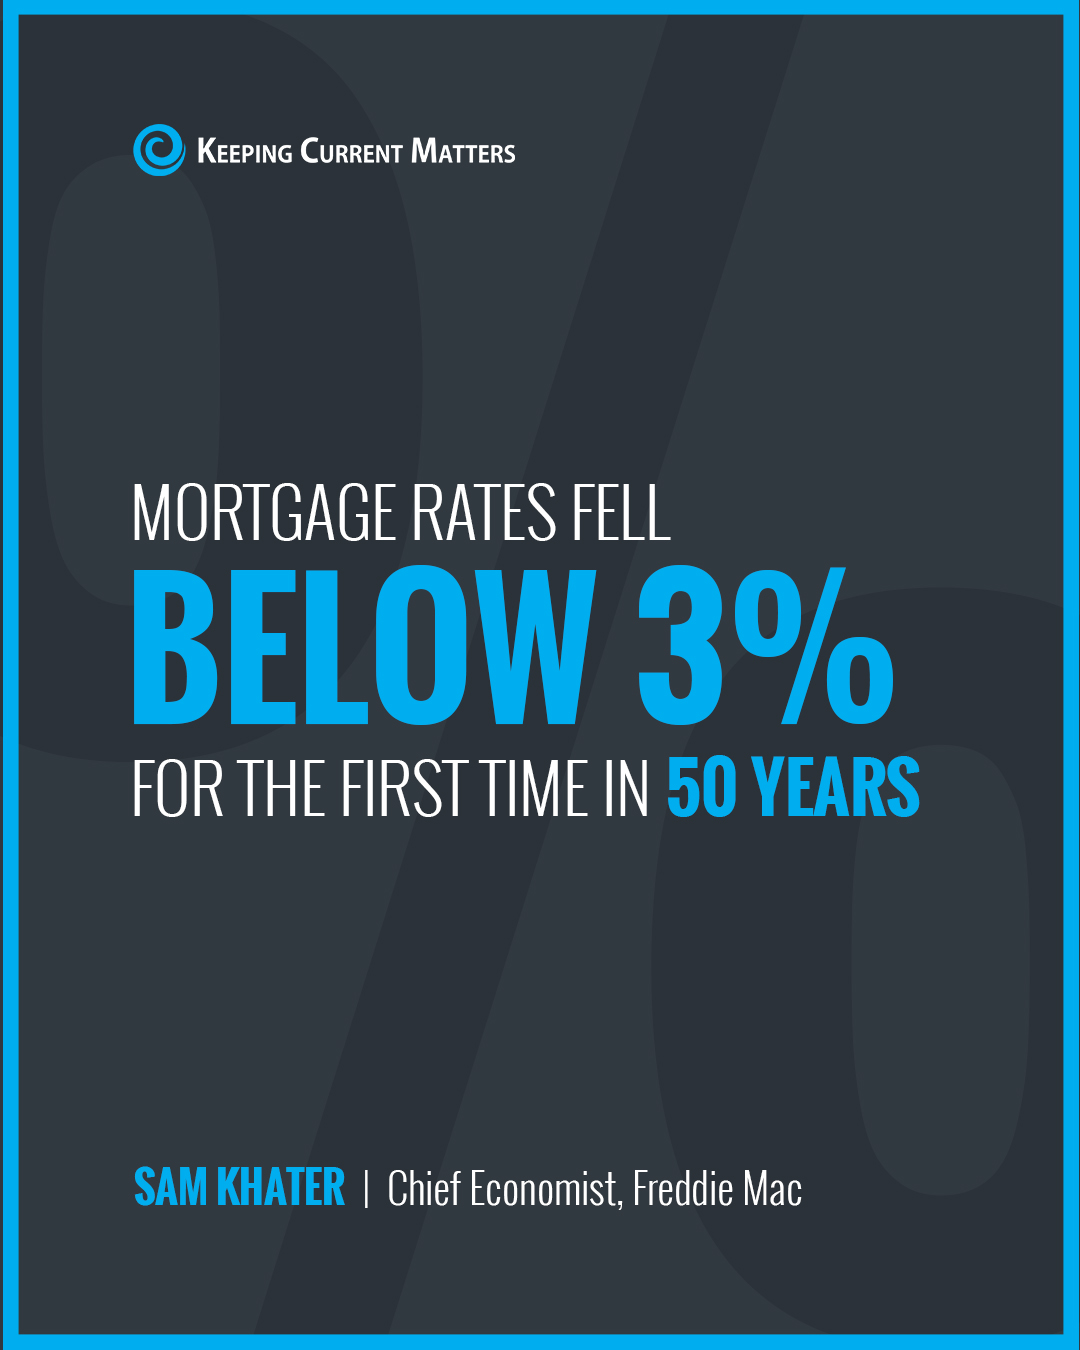 Mortgage Rates Fall Below 3% [INFOGRAPHIC] | Keeping Current Matters